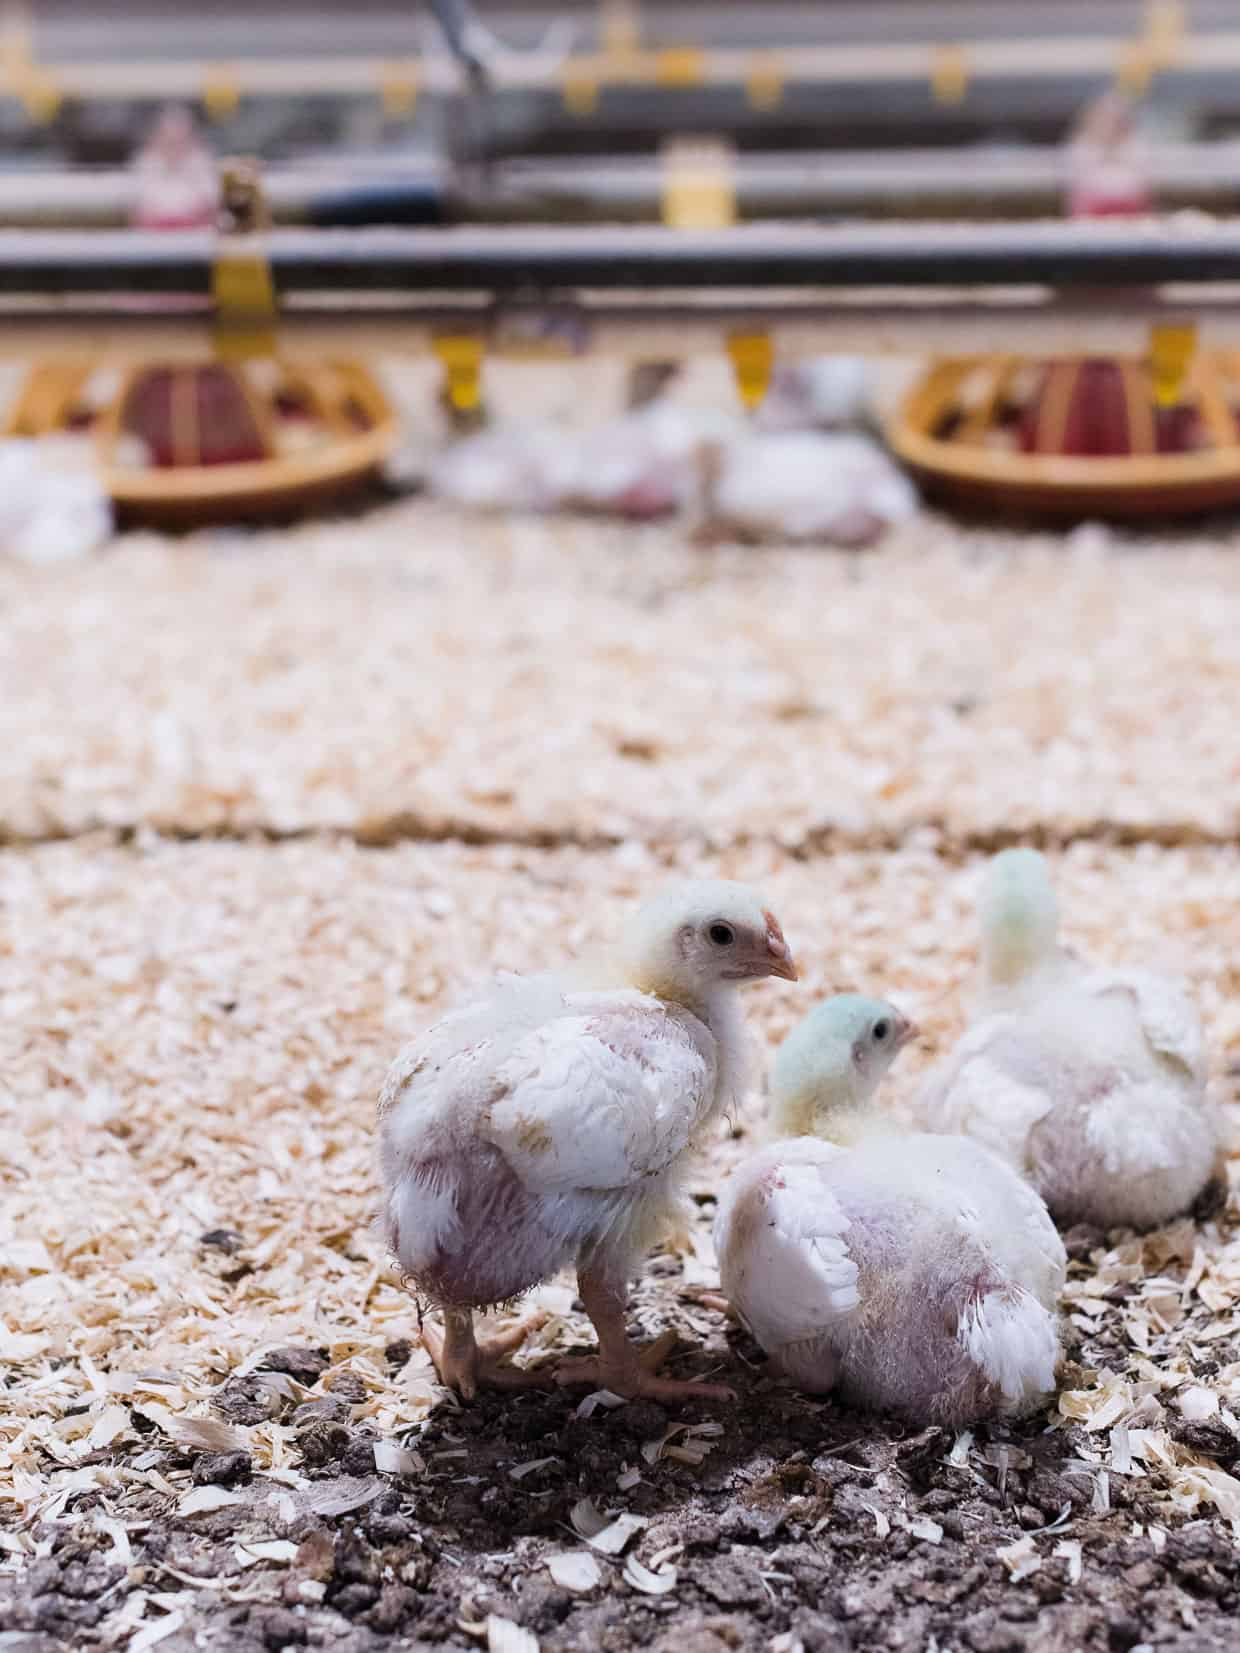 Have you ever wondered what it's like at a chicken farm and chicken production in the U.S.? Join me as I share my recent visit to a farm in Maryland with the National Chicken Council. #sponsored